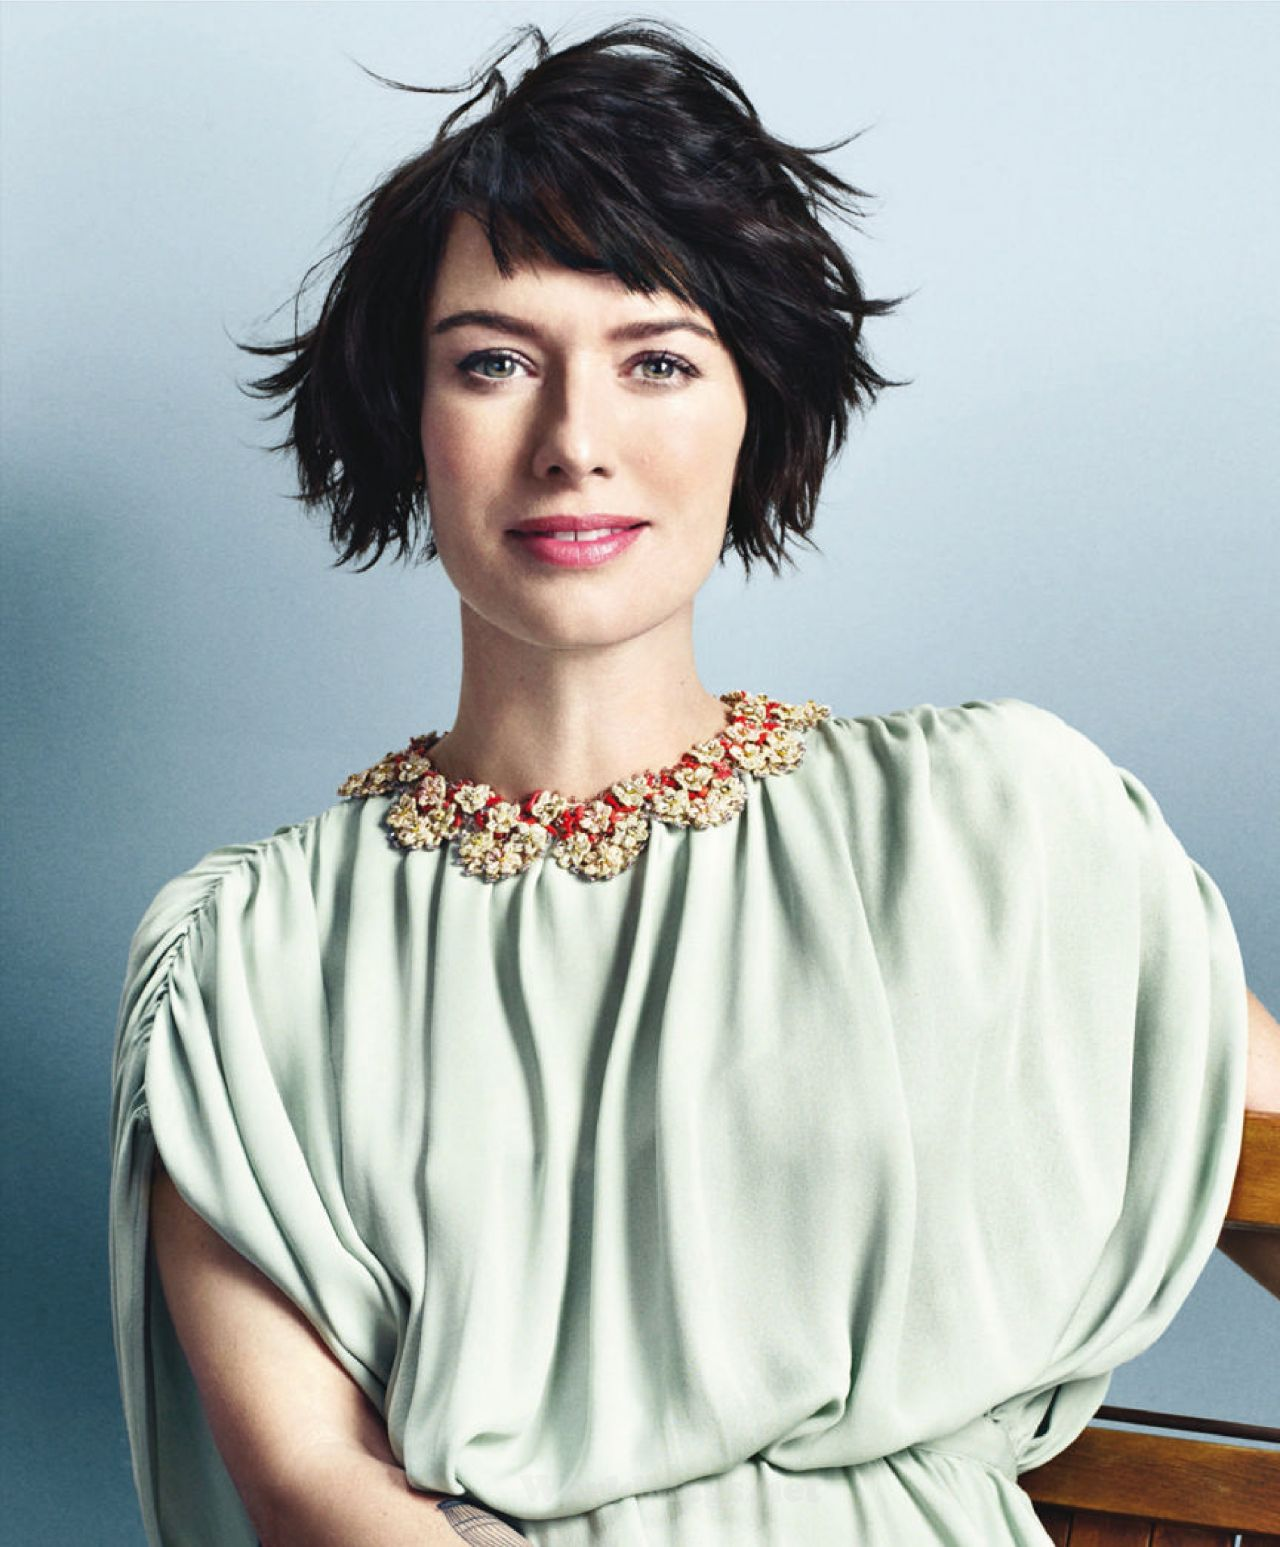 Lena Headey More Magazine April 2015 Issue